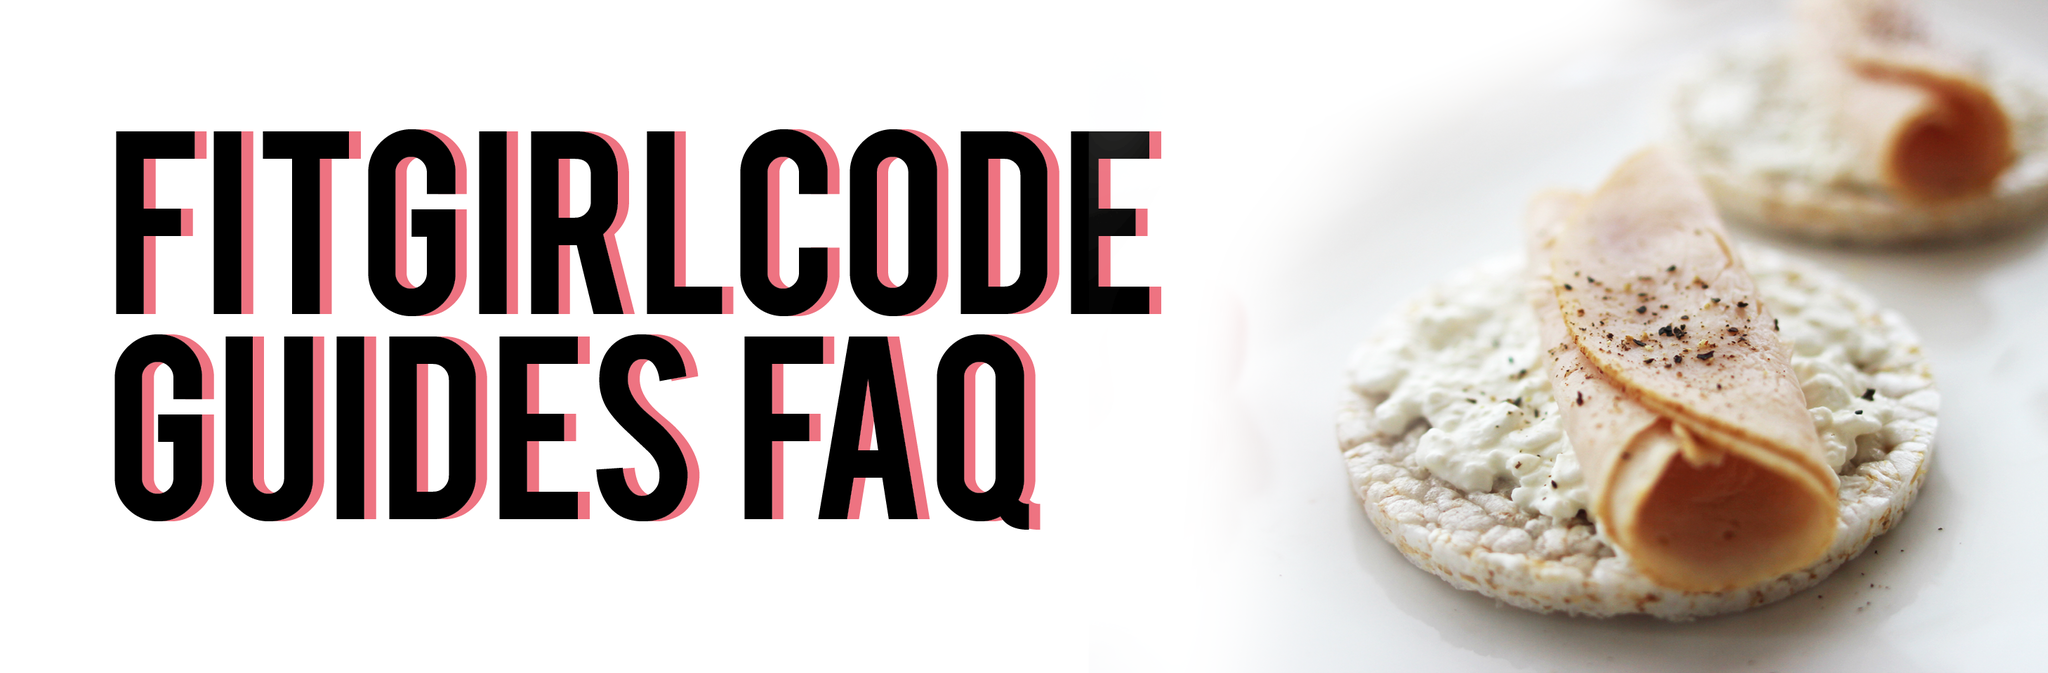 Fitgirlcode guide faq fitgirlcode weve done everything we could to make all of our guides as easy and user friendly as possible but you may of course still have some questions arise fandeluxe Choice Image